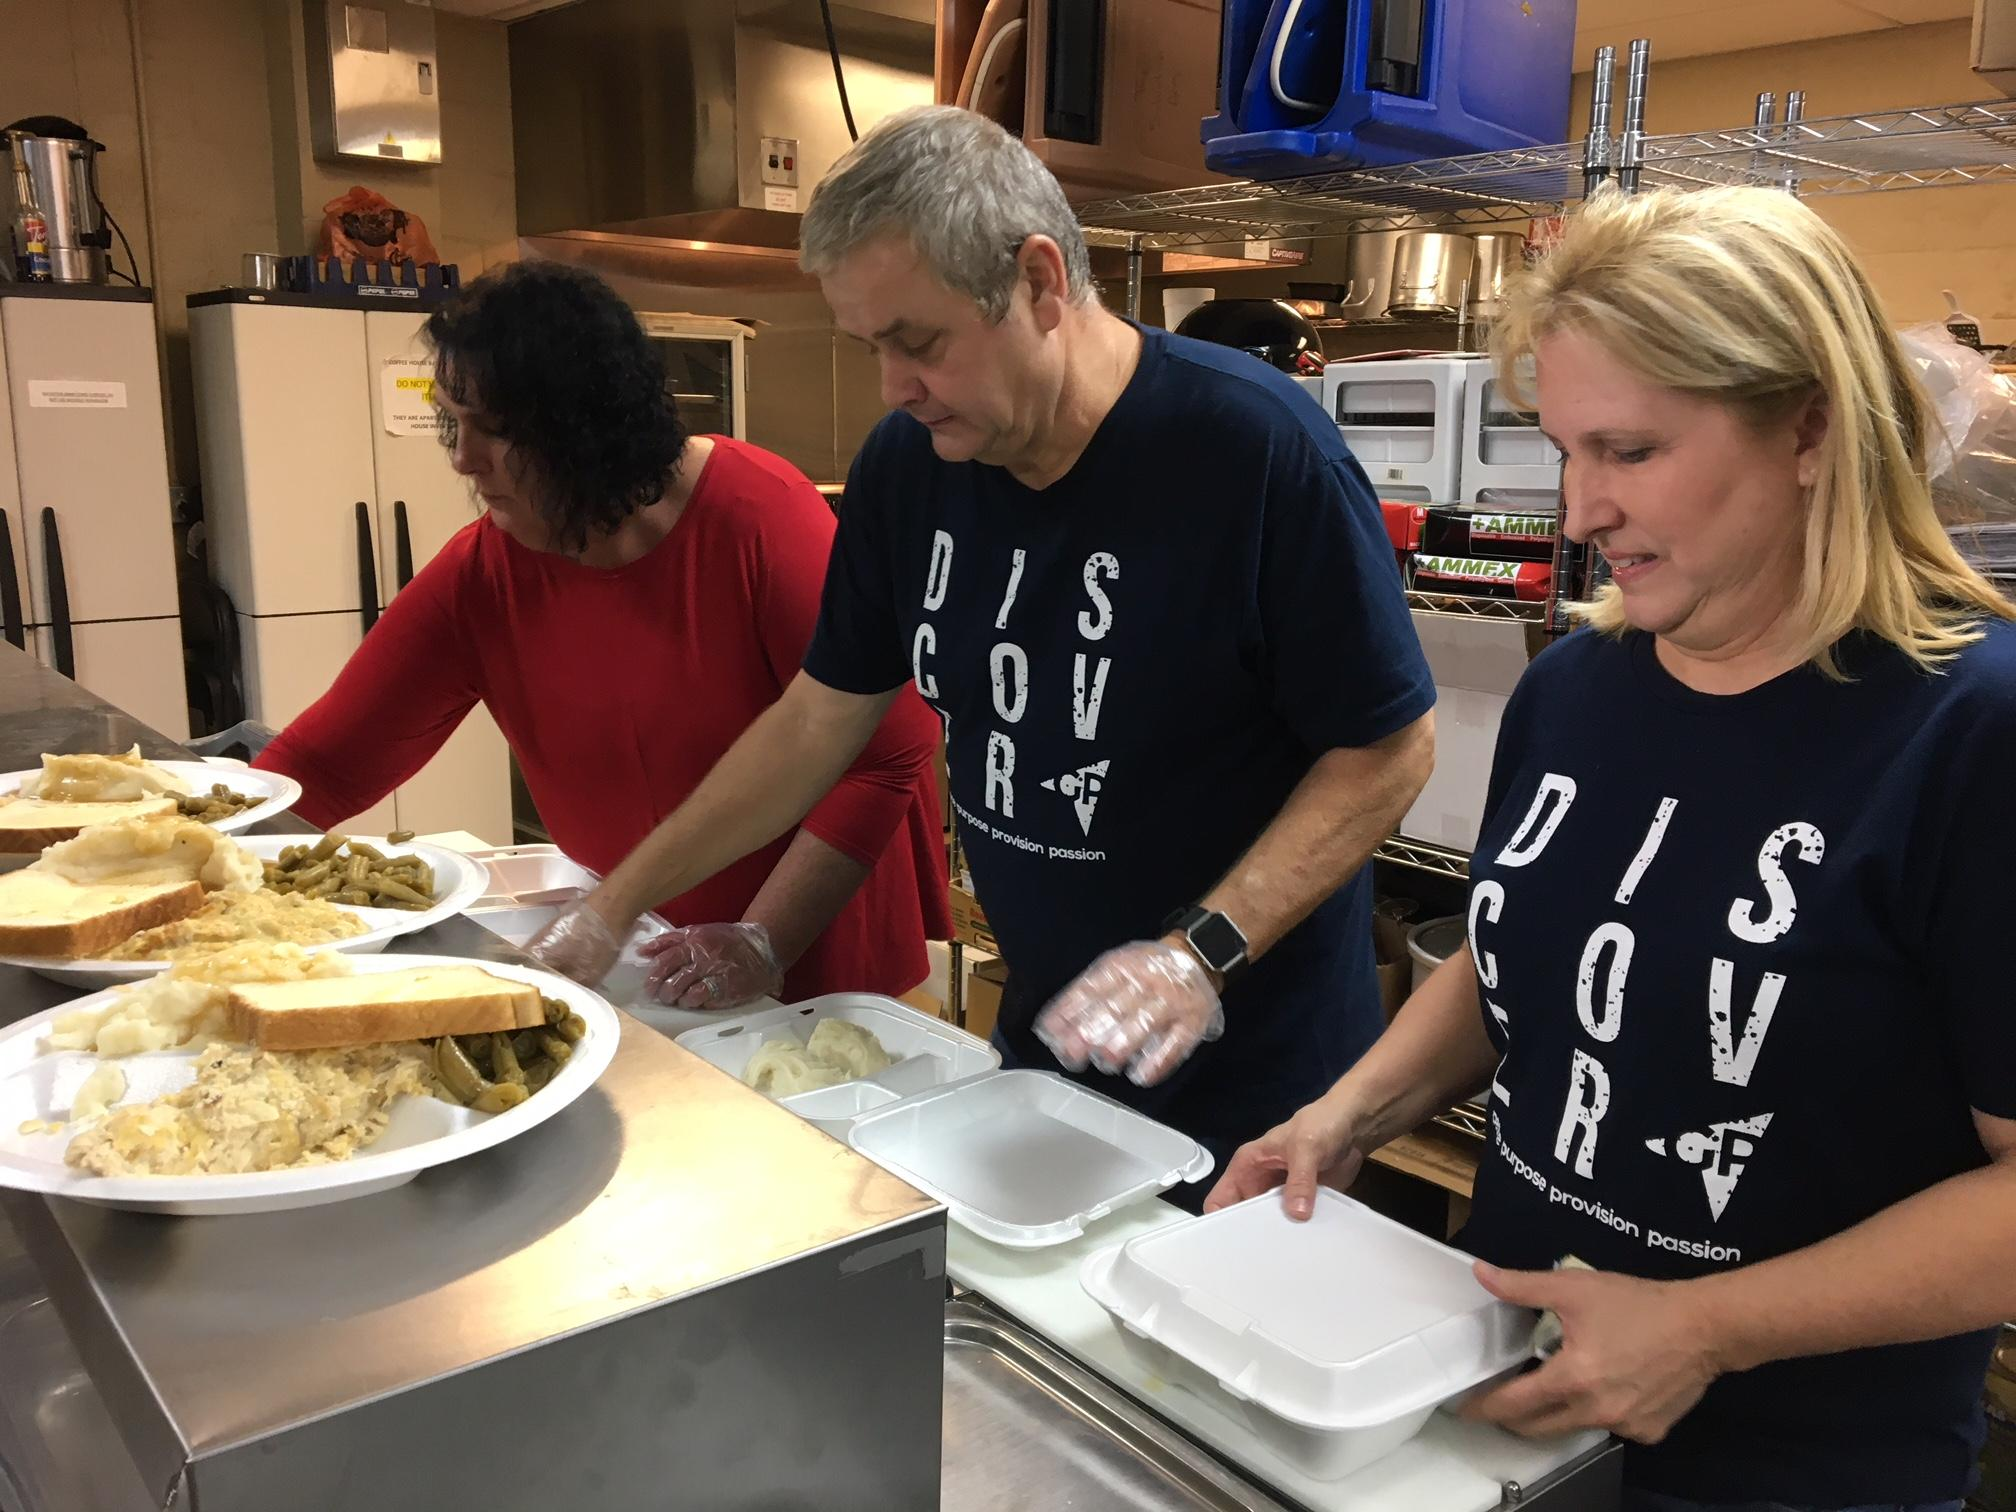 On Sunday nights the Meals of Hope program is in full swing at the Salvation Army's kitchen in Cleveland. (Image: WTVC)<p></p>